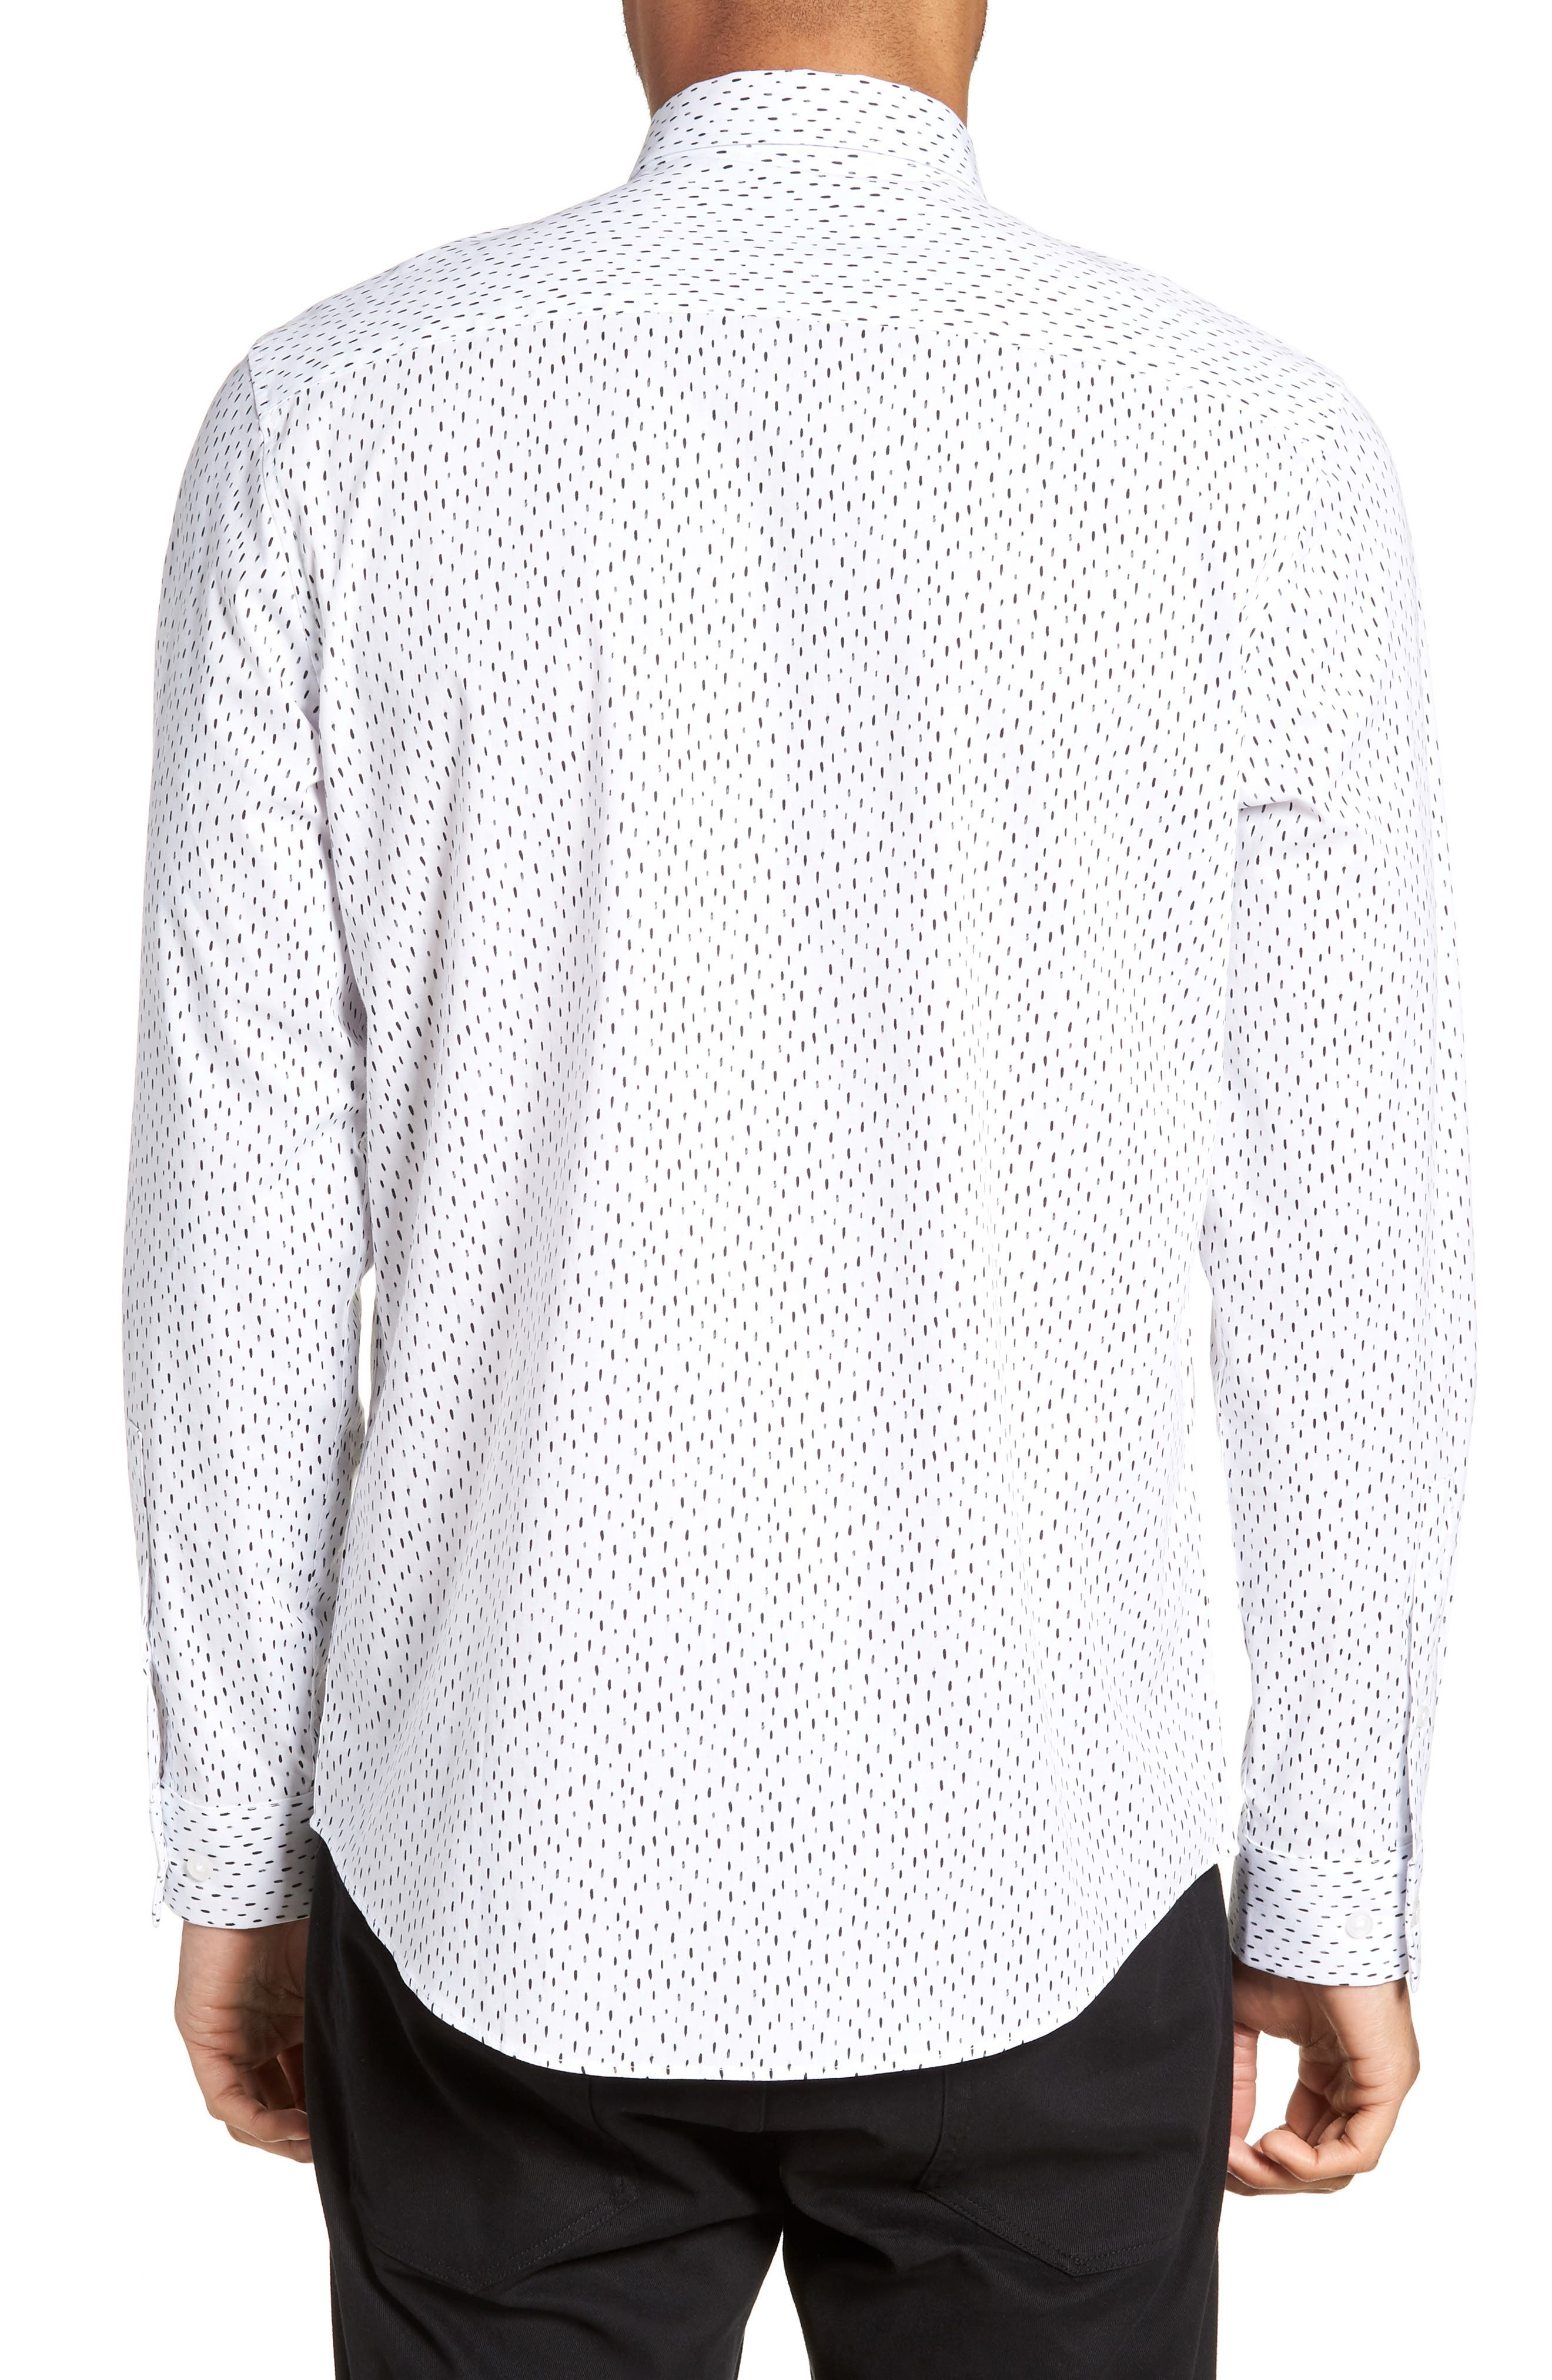 Trim Fit Stretch Print Sport Shirt,                             Alternate thumbnail 3, color,                             White Black Rain